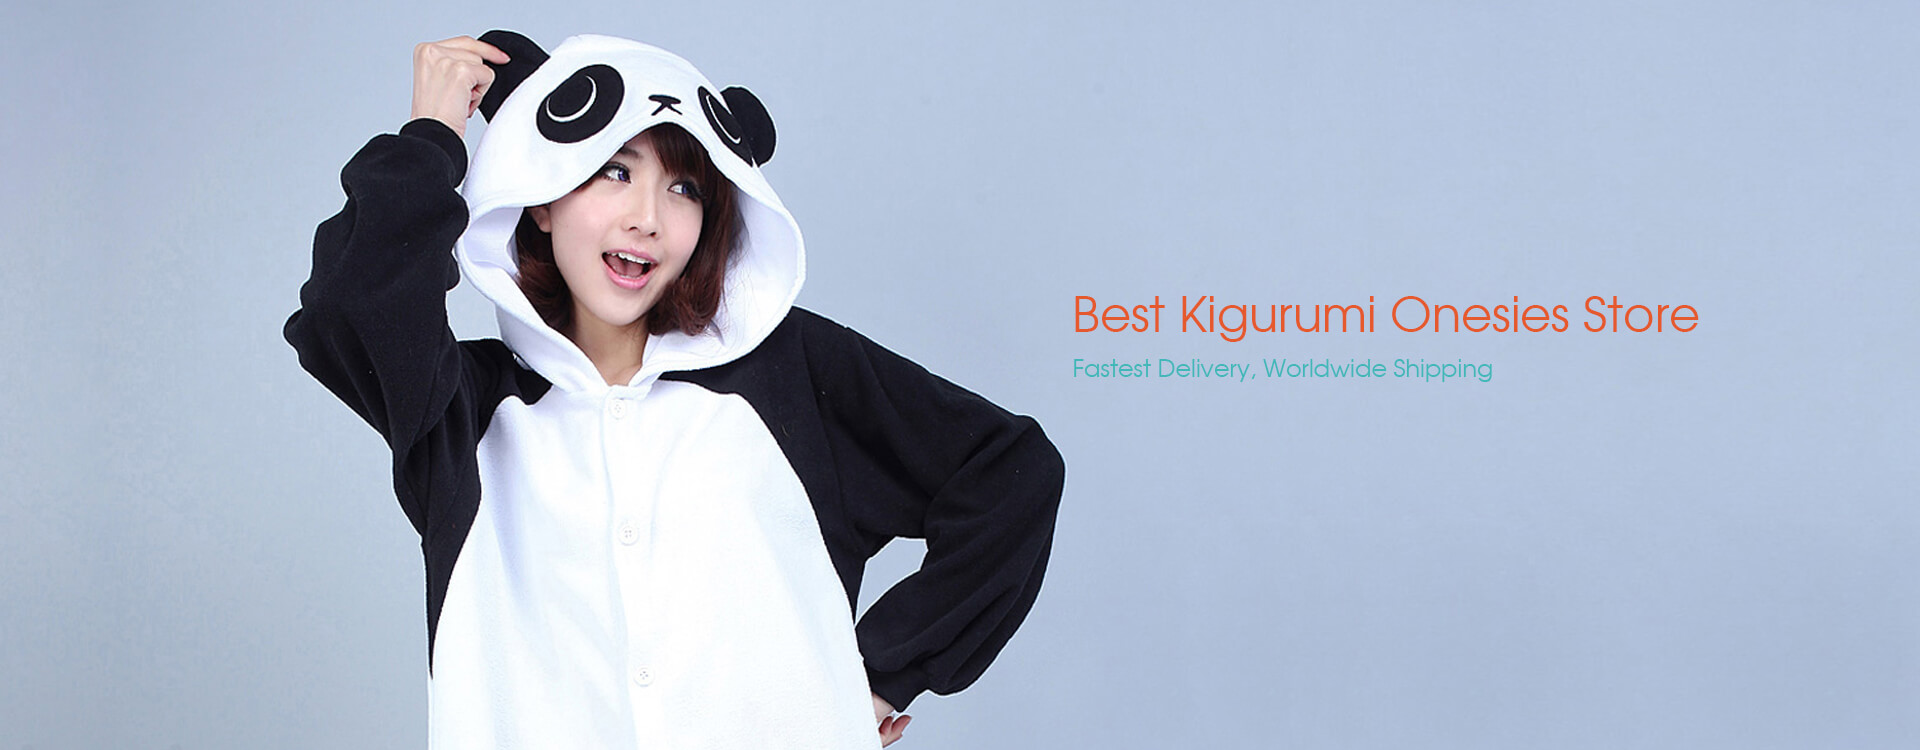 kigurumisir shopping